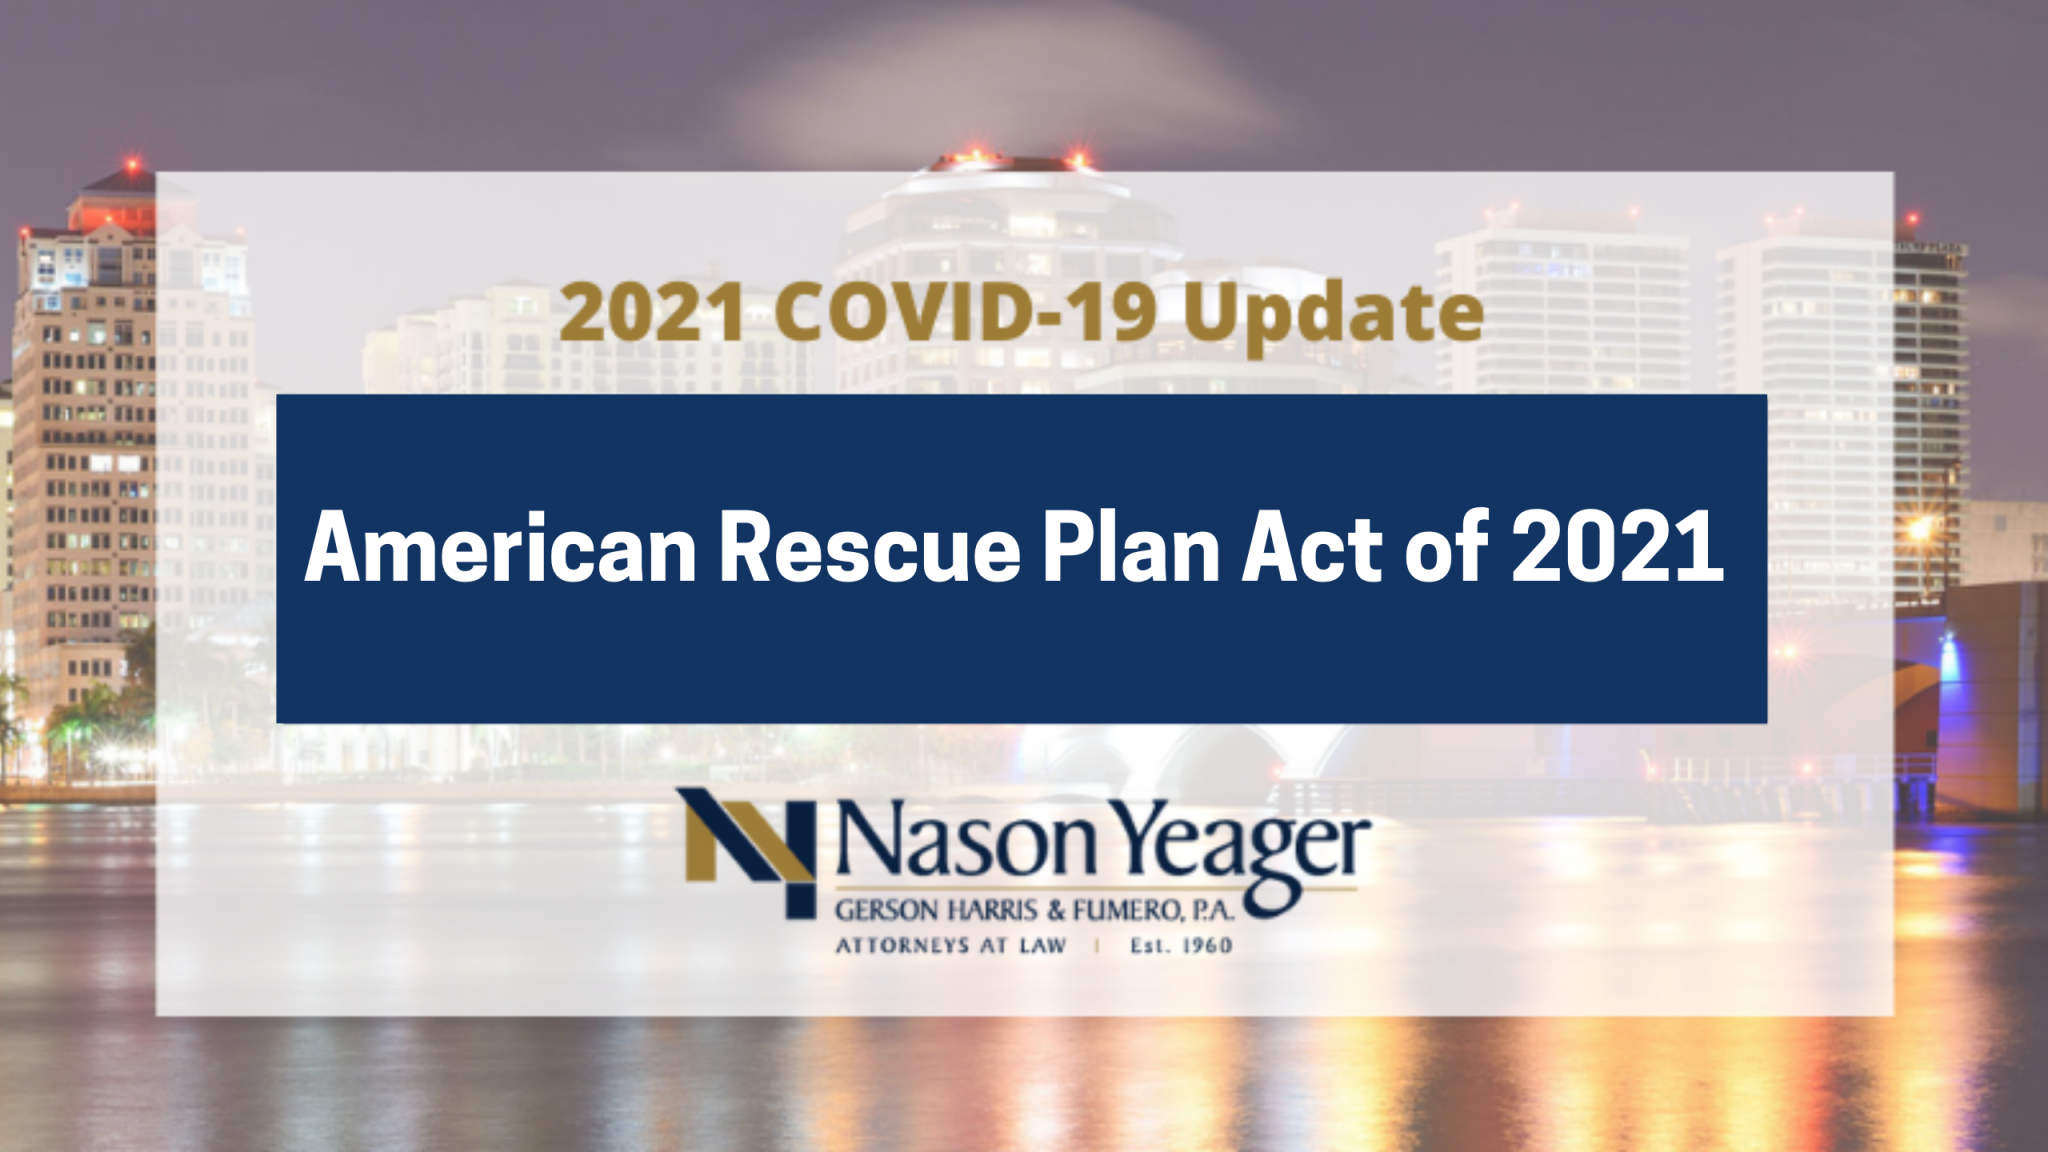 American Rescue Plan Act of 2021 Provides Additional Pandemic Relief for Struggling Individuals, Businesses and Governments